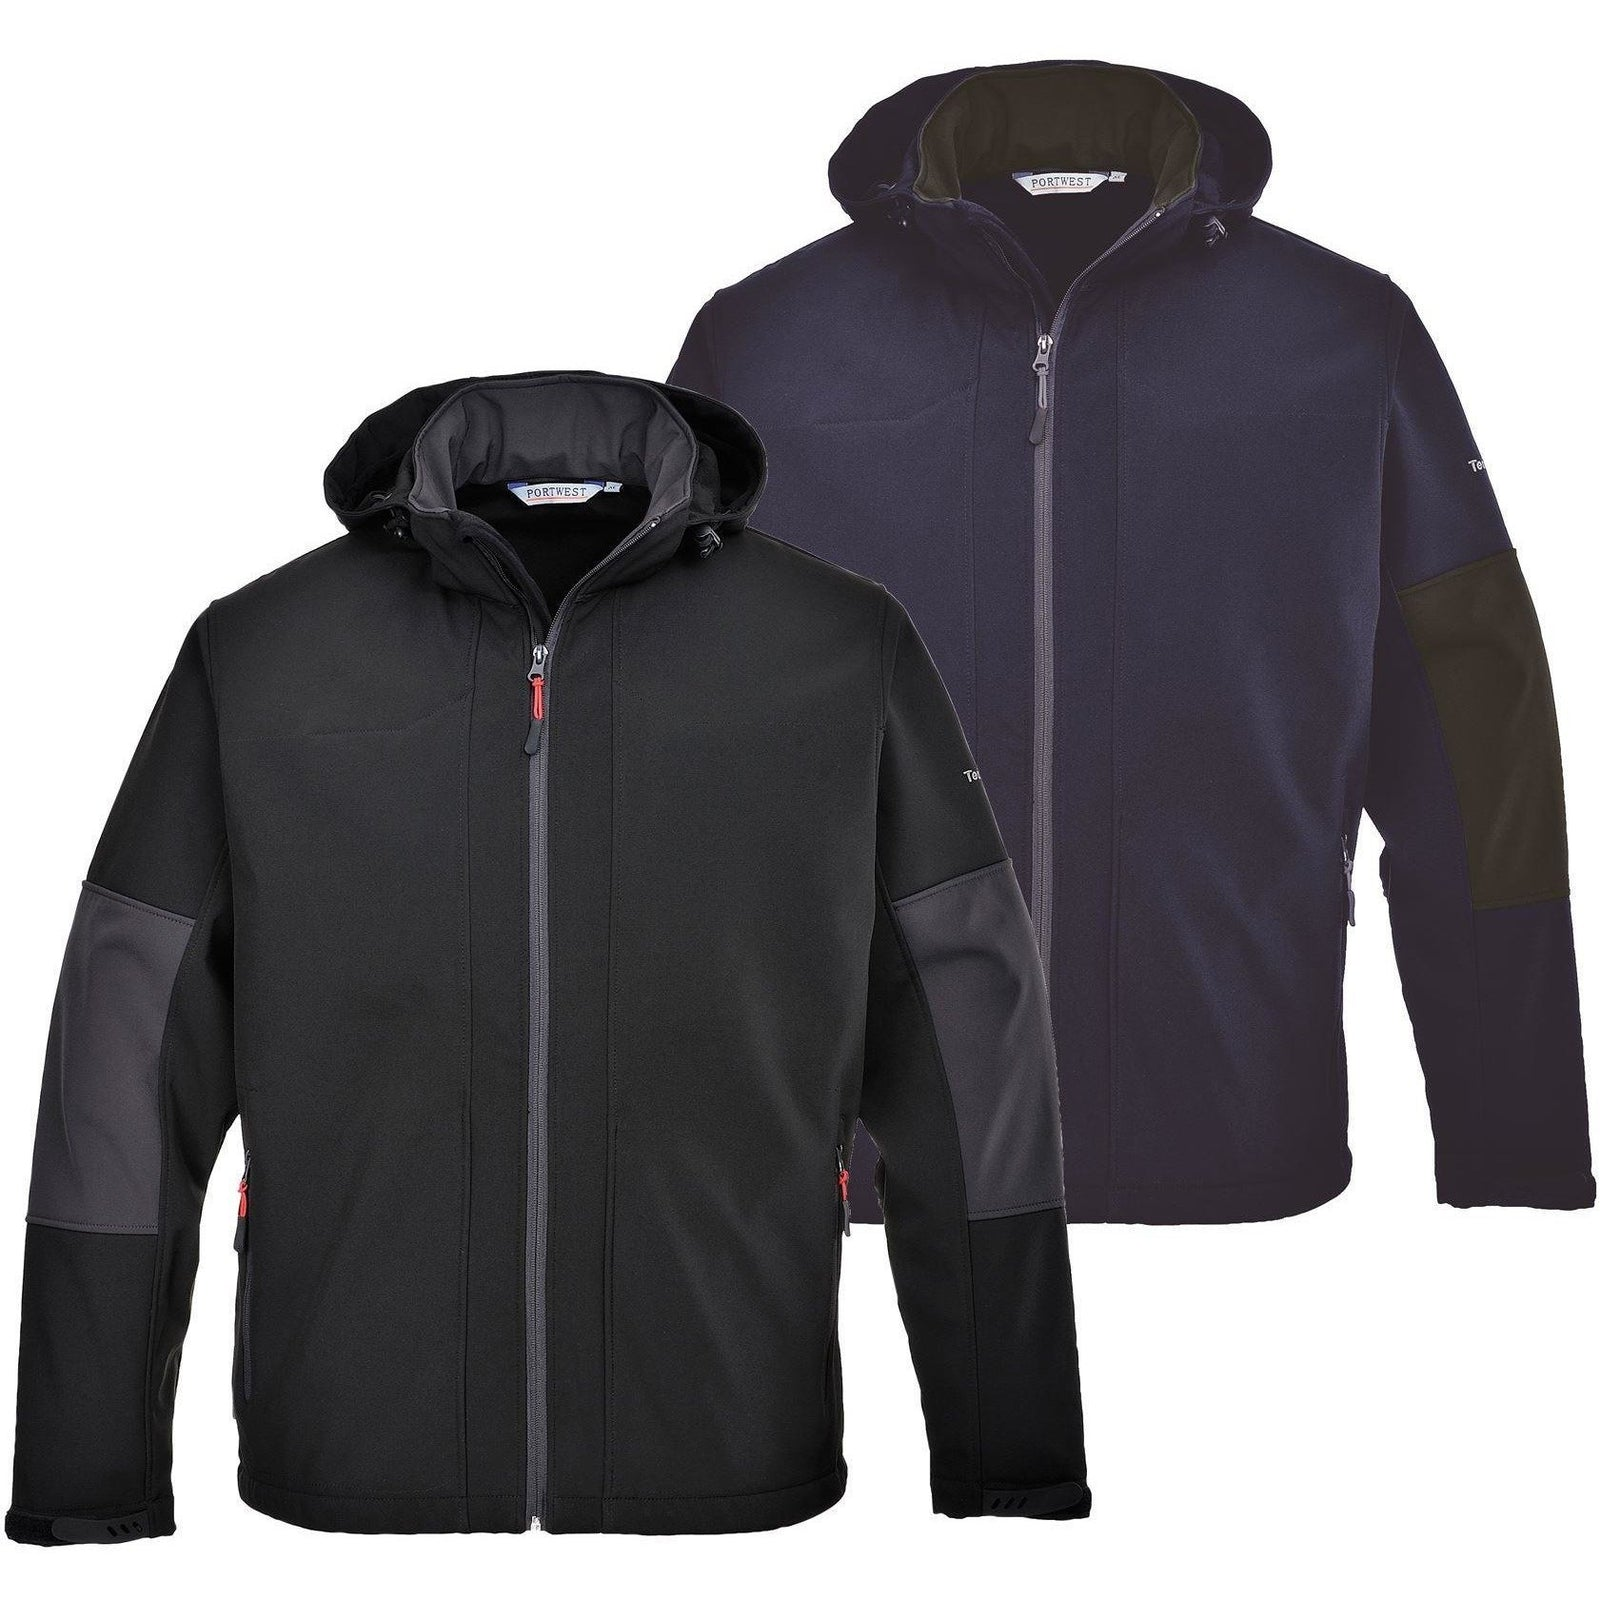 Portwest Softshell with Hood (3L) TK53 - reid outdoors